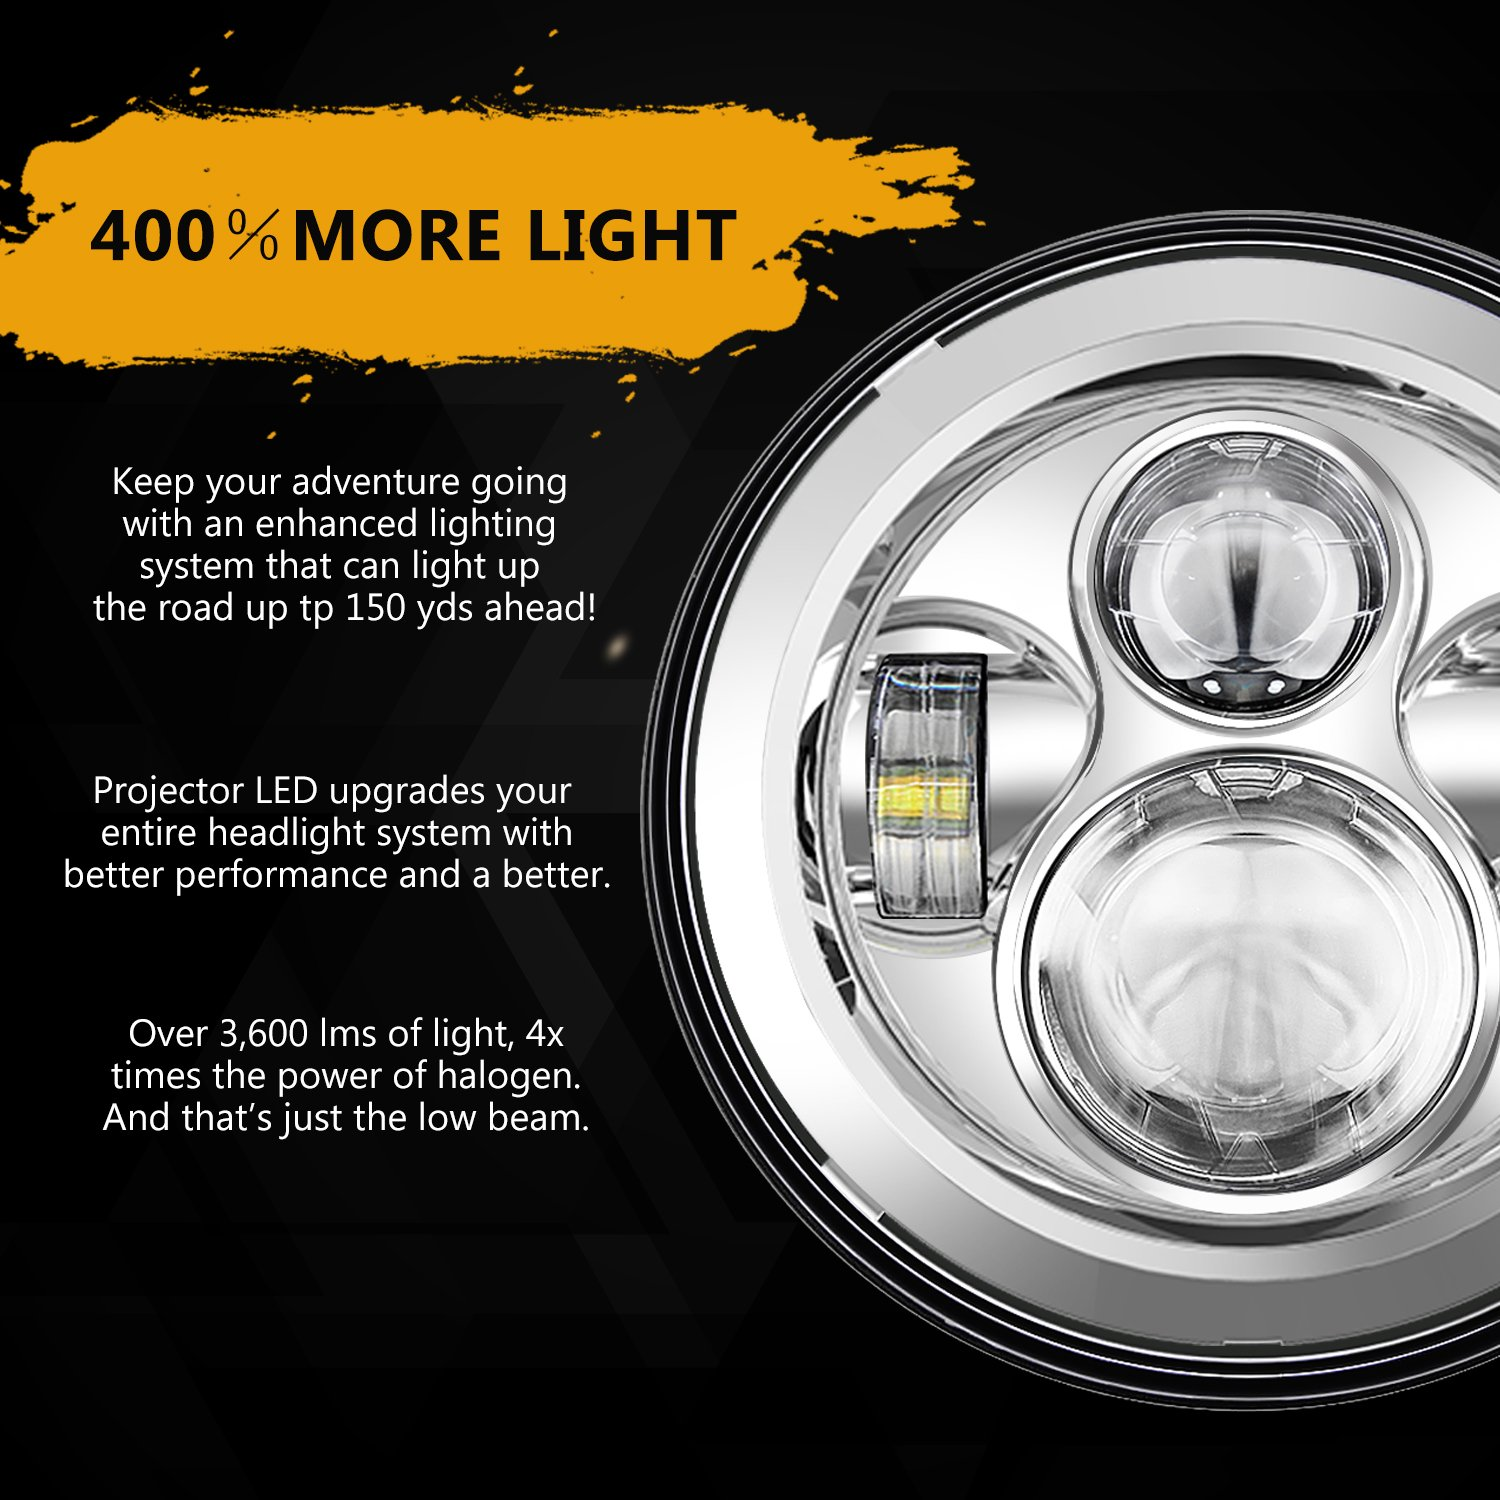 7 Led Headlight For Harley Davidson Motorcycle Chrome Projector Hid 2005 Road King Fuse Box Light Bulb Automotive